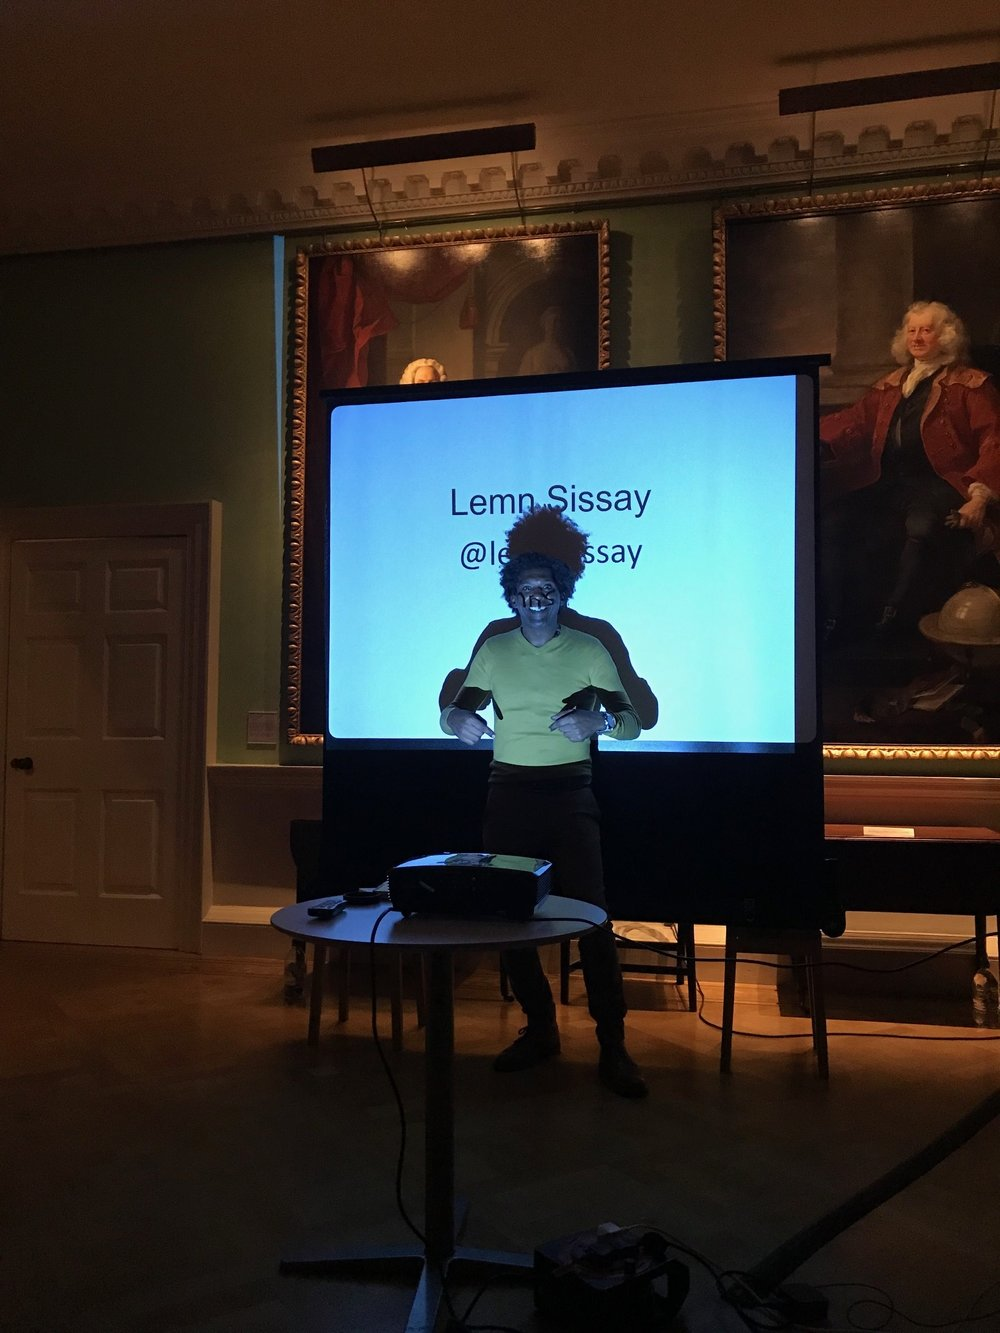 Thomas Coram peeking out from behind Lemn Sissay in the Foundling Museum picture gallery